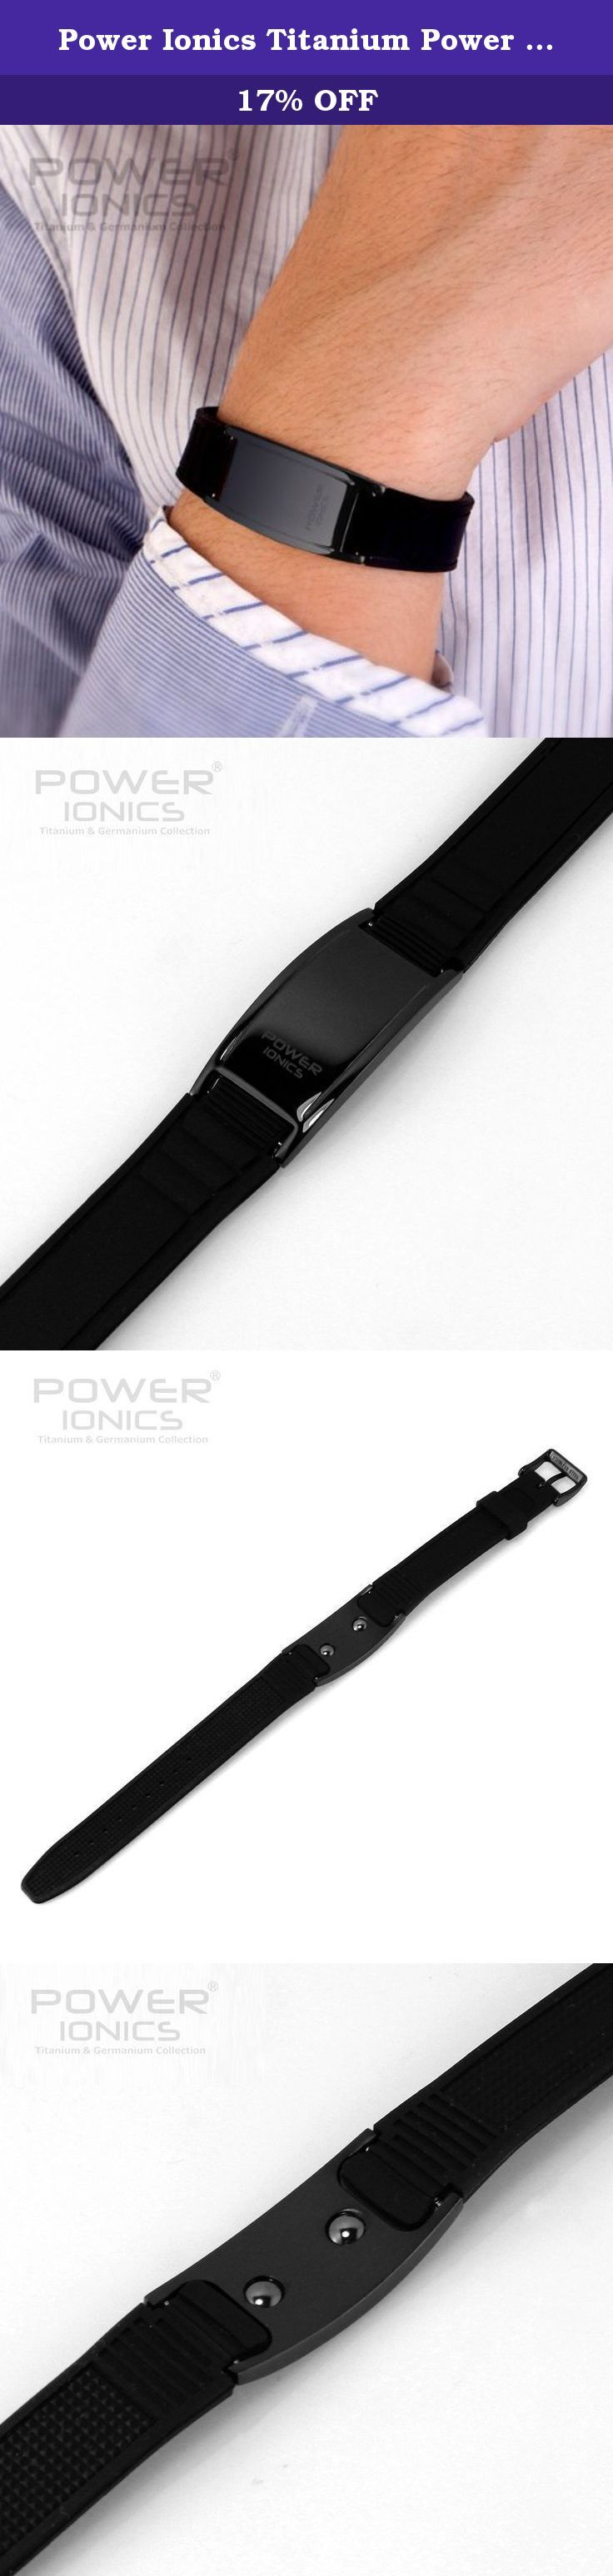 Power Ionics Titanium Power 2000 Ionics Bracelet Band Balance Black/Black Plate. Who should wear This product: * If you have to use a computer or a cell phone for a long period of time * If you have to keep focused on your work for a long period of time * If your job requires you to stand or do laborious work for a long time * If you are a person who always has cold hands and cold feet * If you have problems such as tense nerves, poor blood circulation, or stiffness and shoulder and neck...